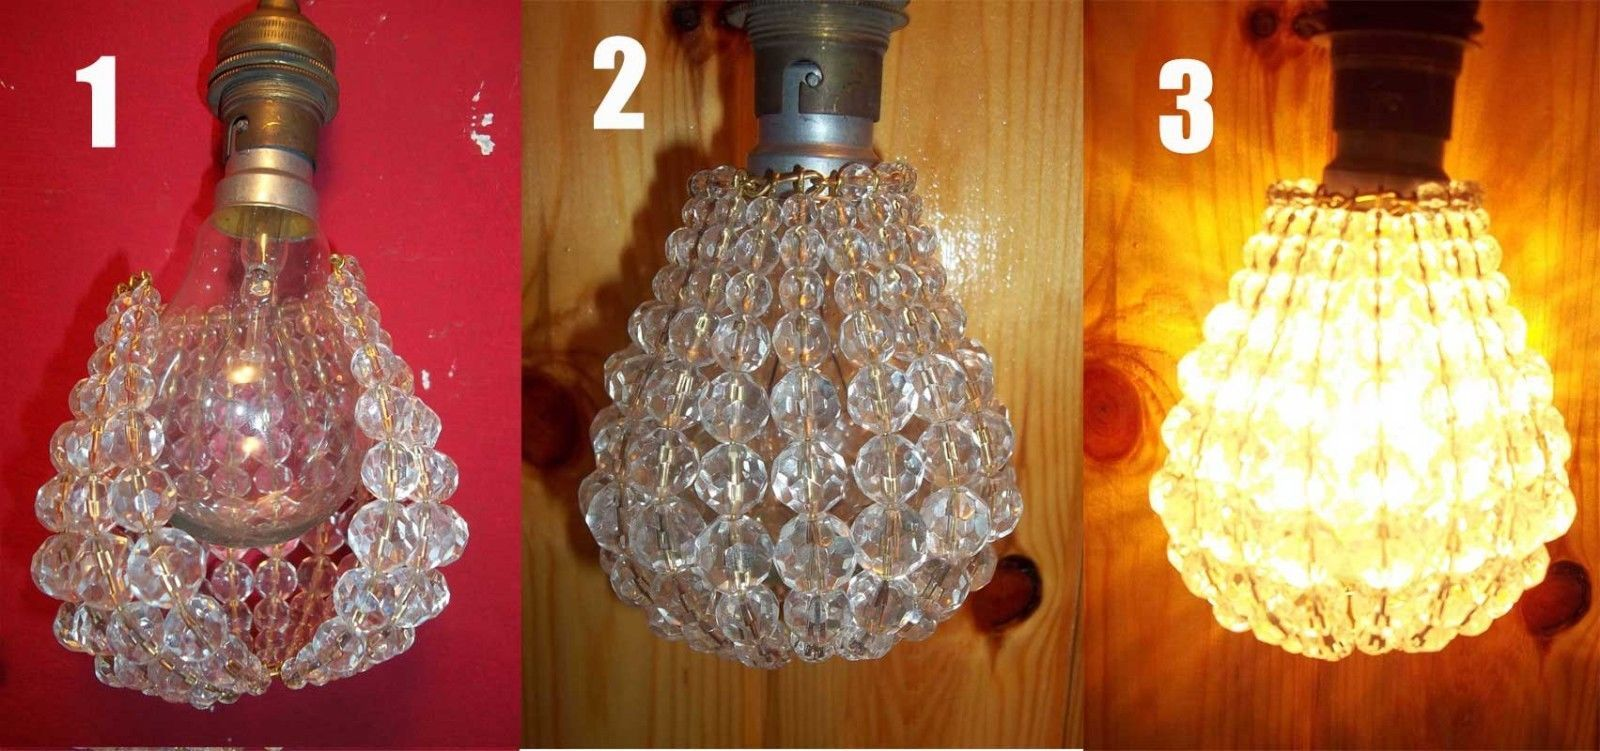 Light bulb glass crystal beads cover jacket diy lamp chandelier light bulb glass crystal beads cover jacket diy lamp chandelier shade droplets ebay arubaitofo Image collections